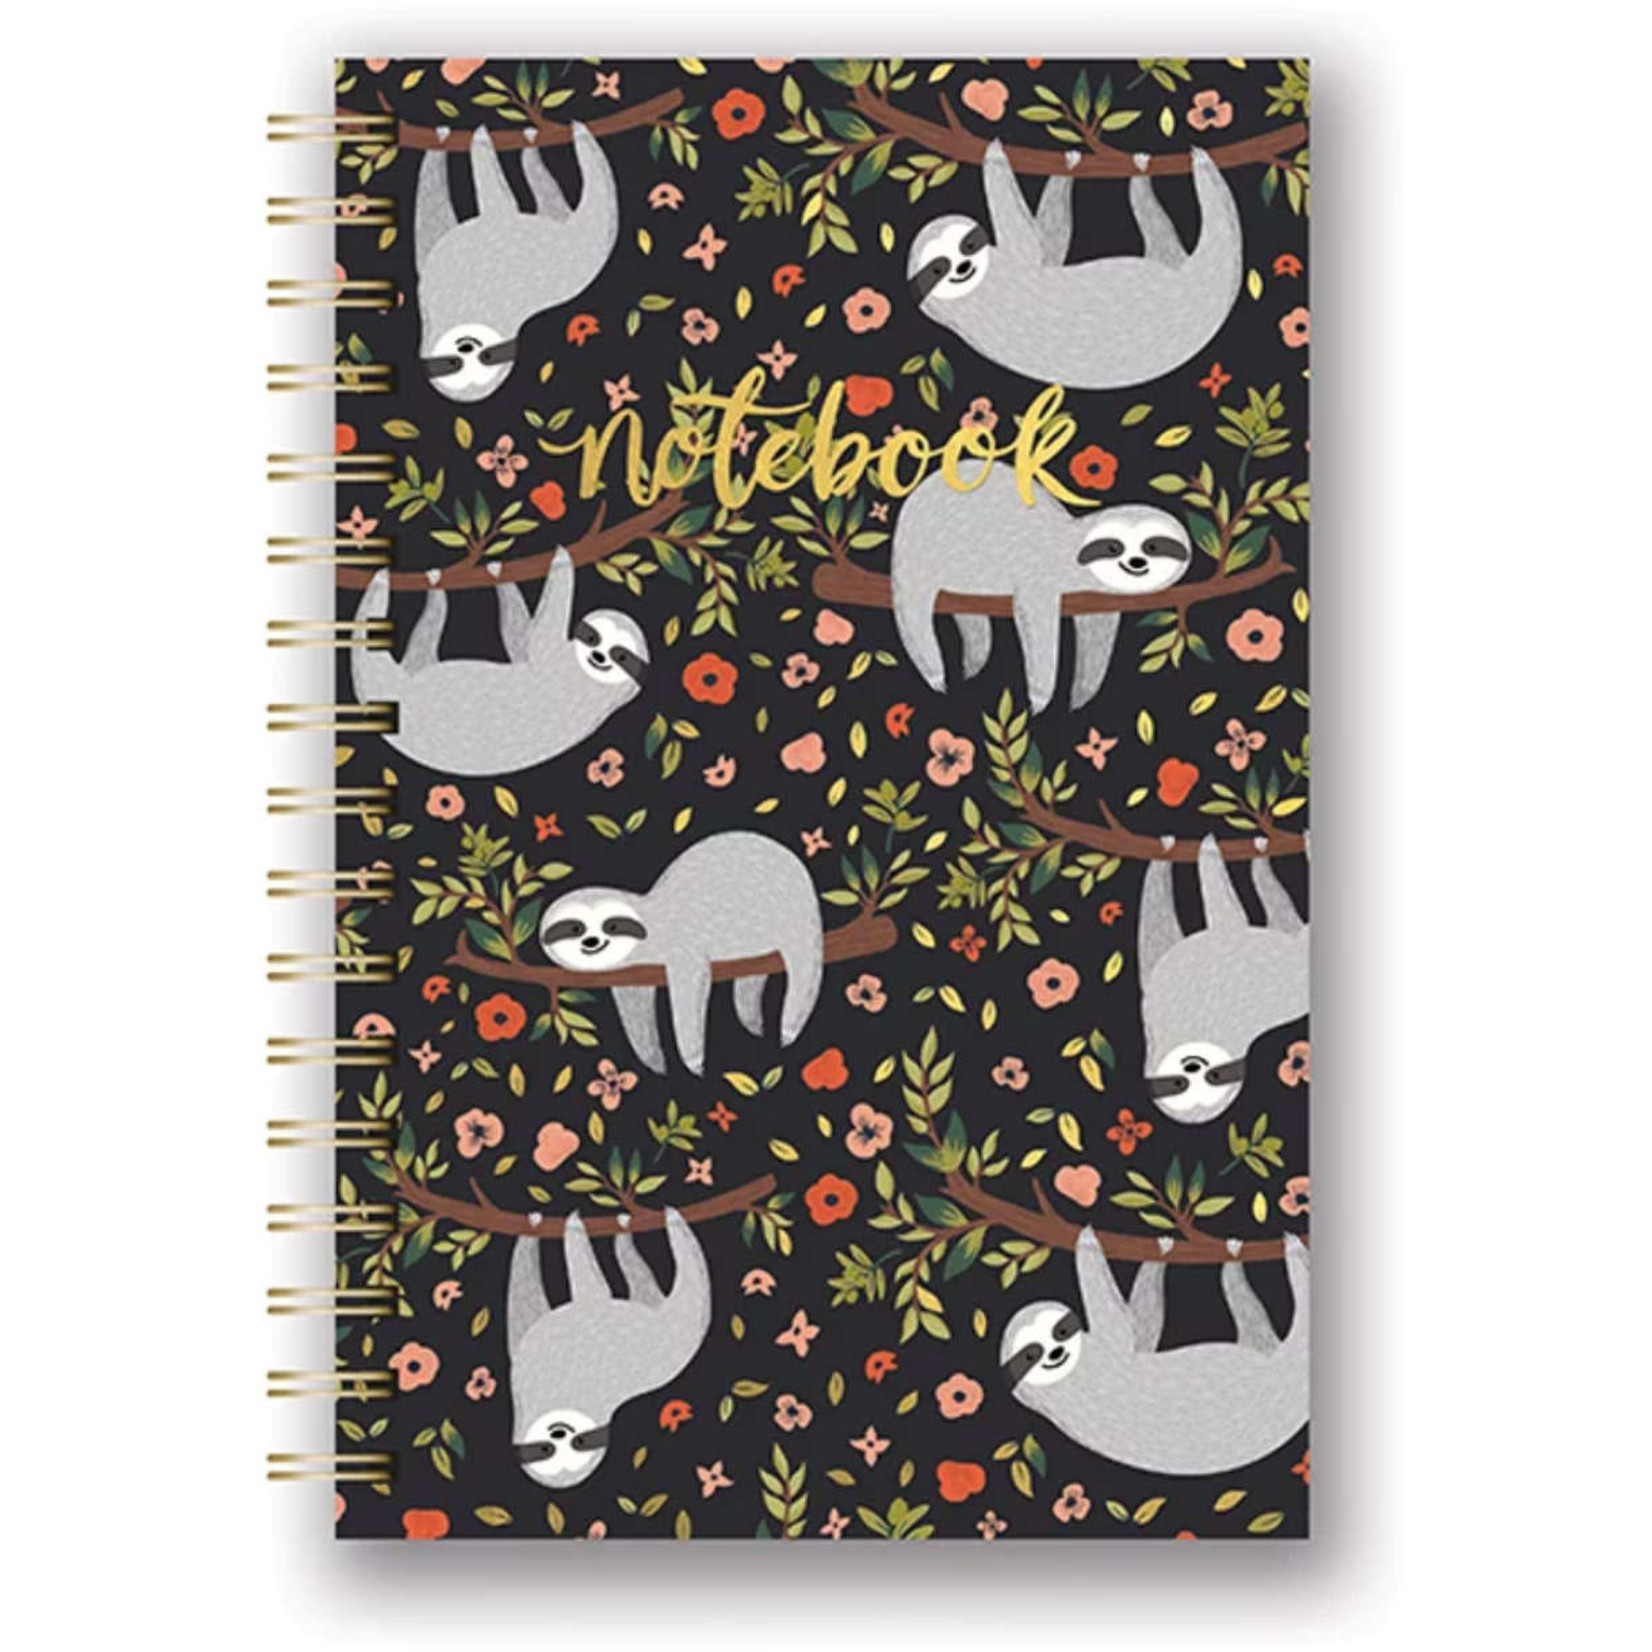 STUDIO OH! THE SLOTH LIFE NOTEBOOK